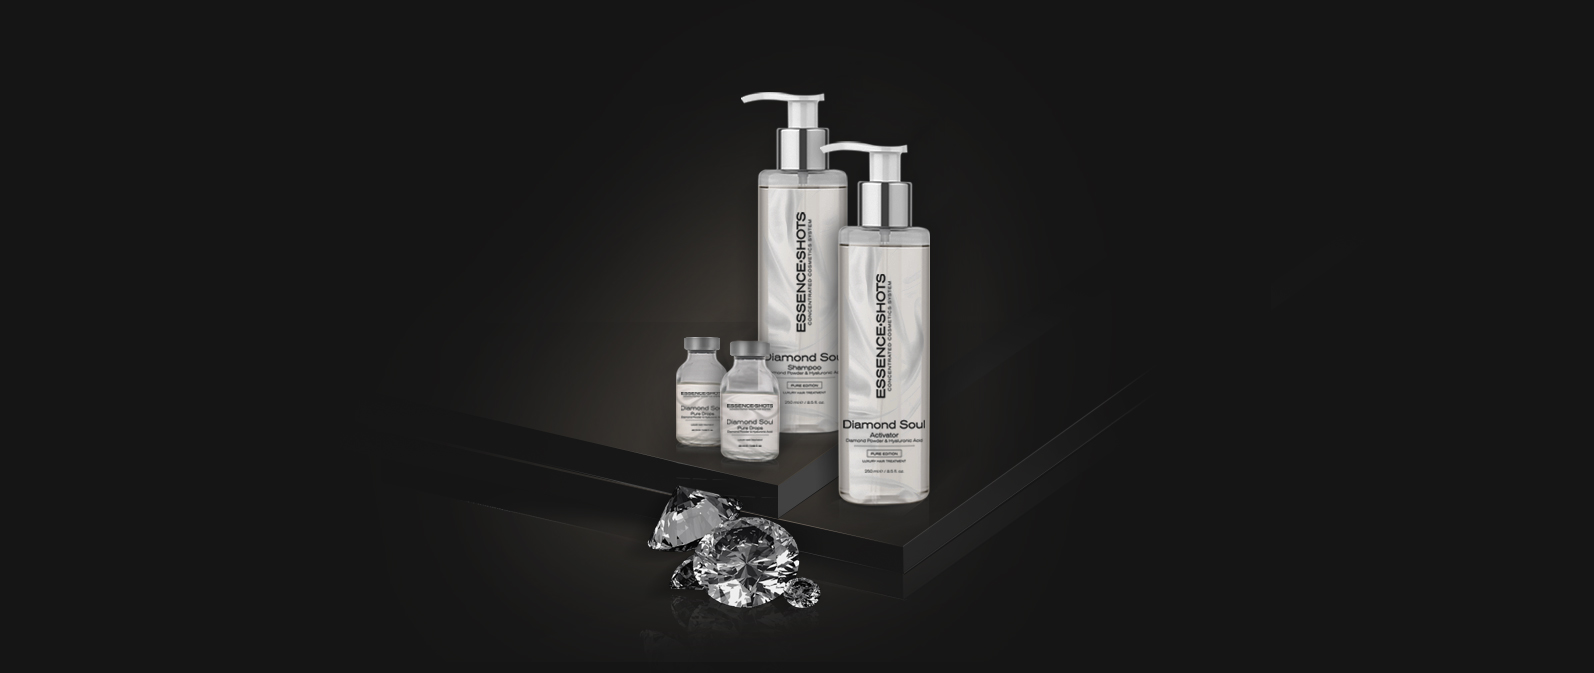 KV-1 Diamond Soul Ultimate Moisture Luxury System